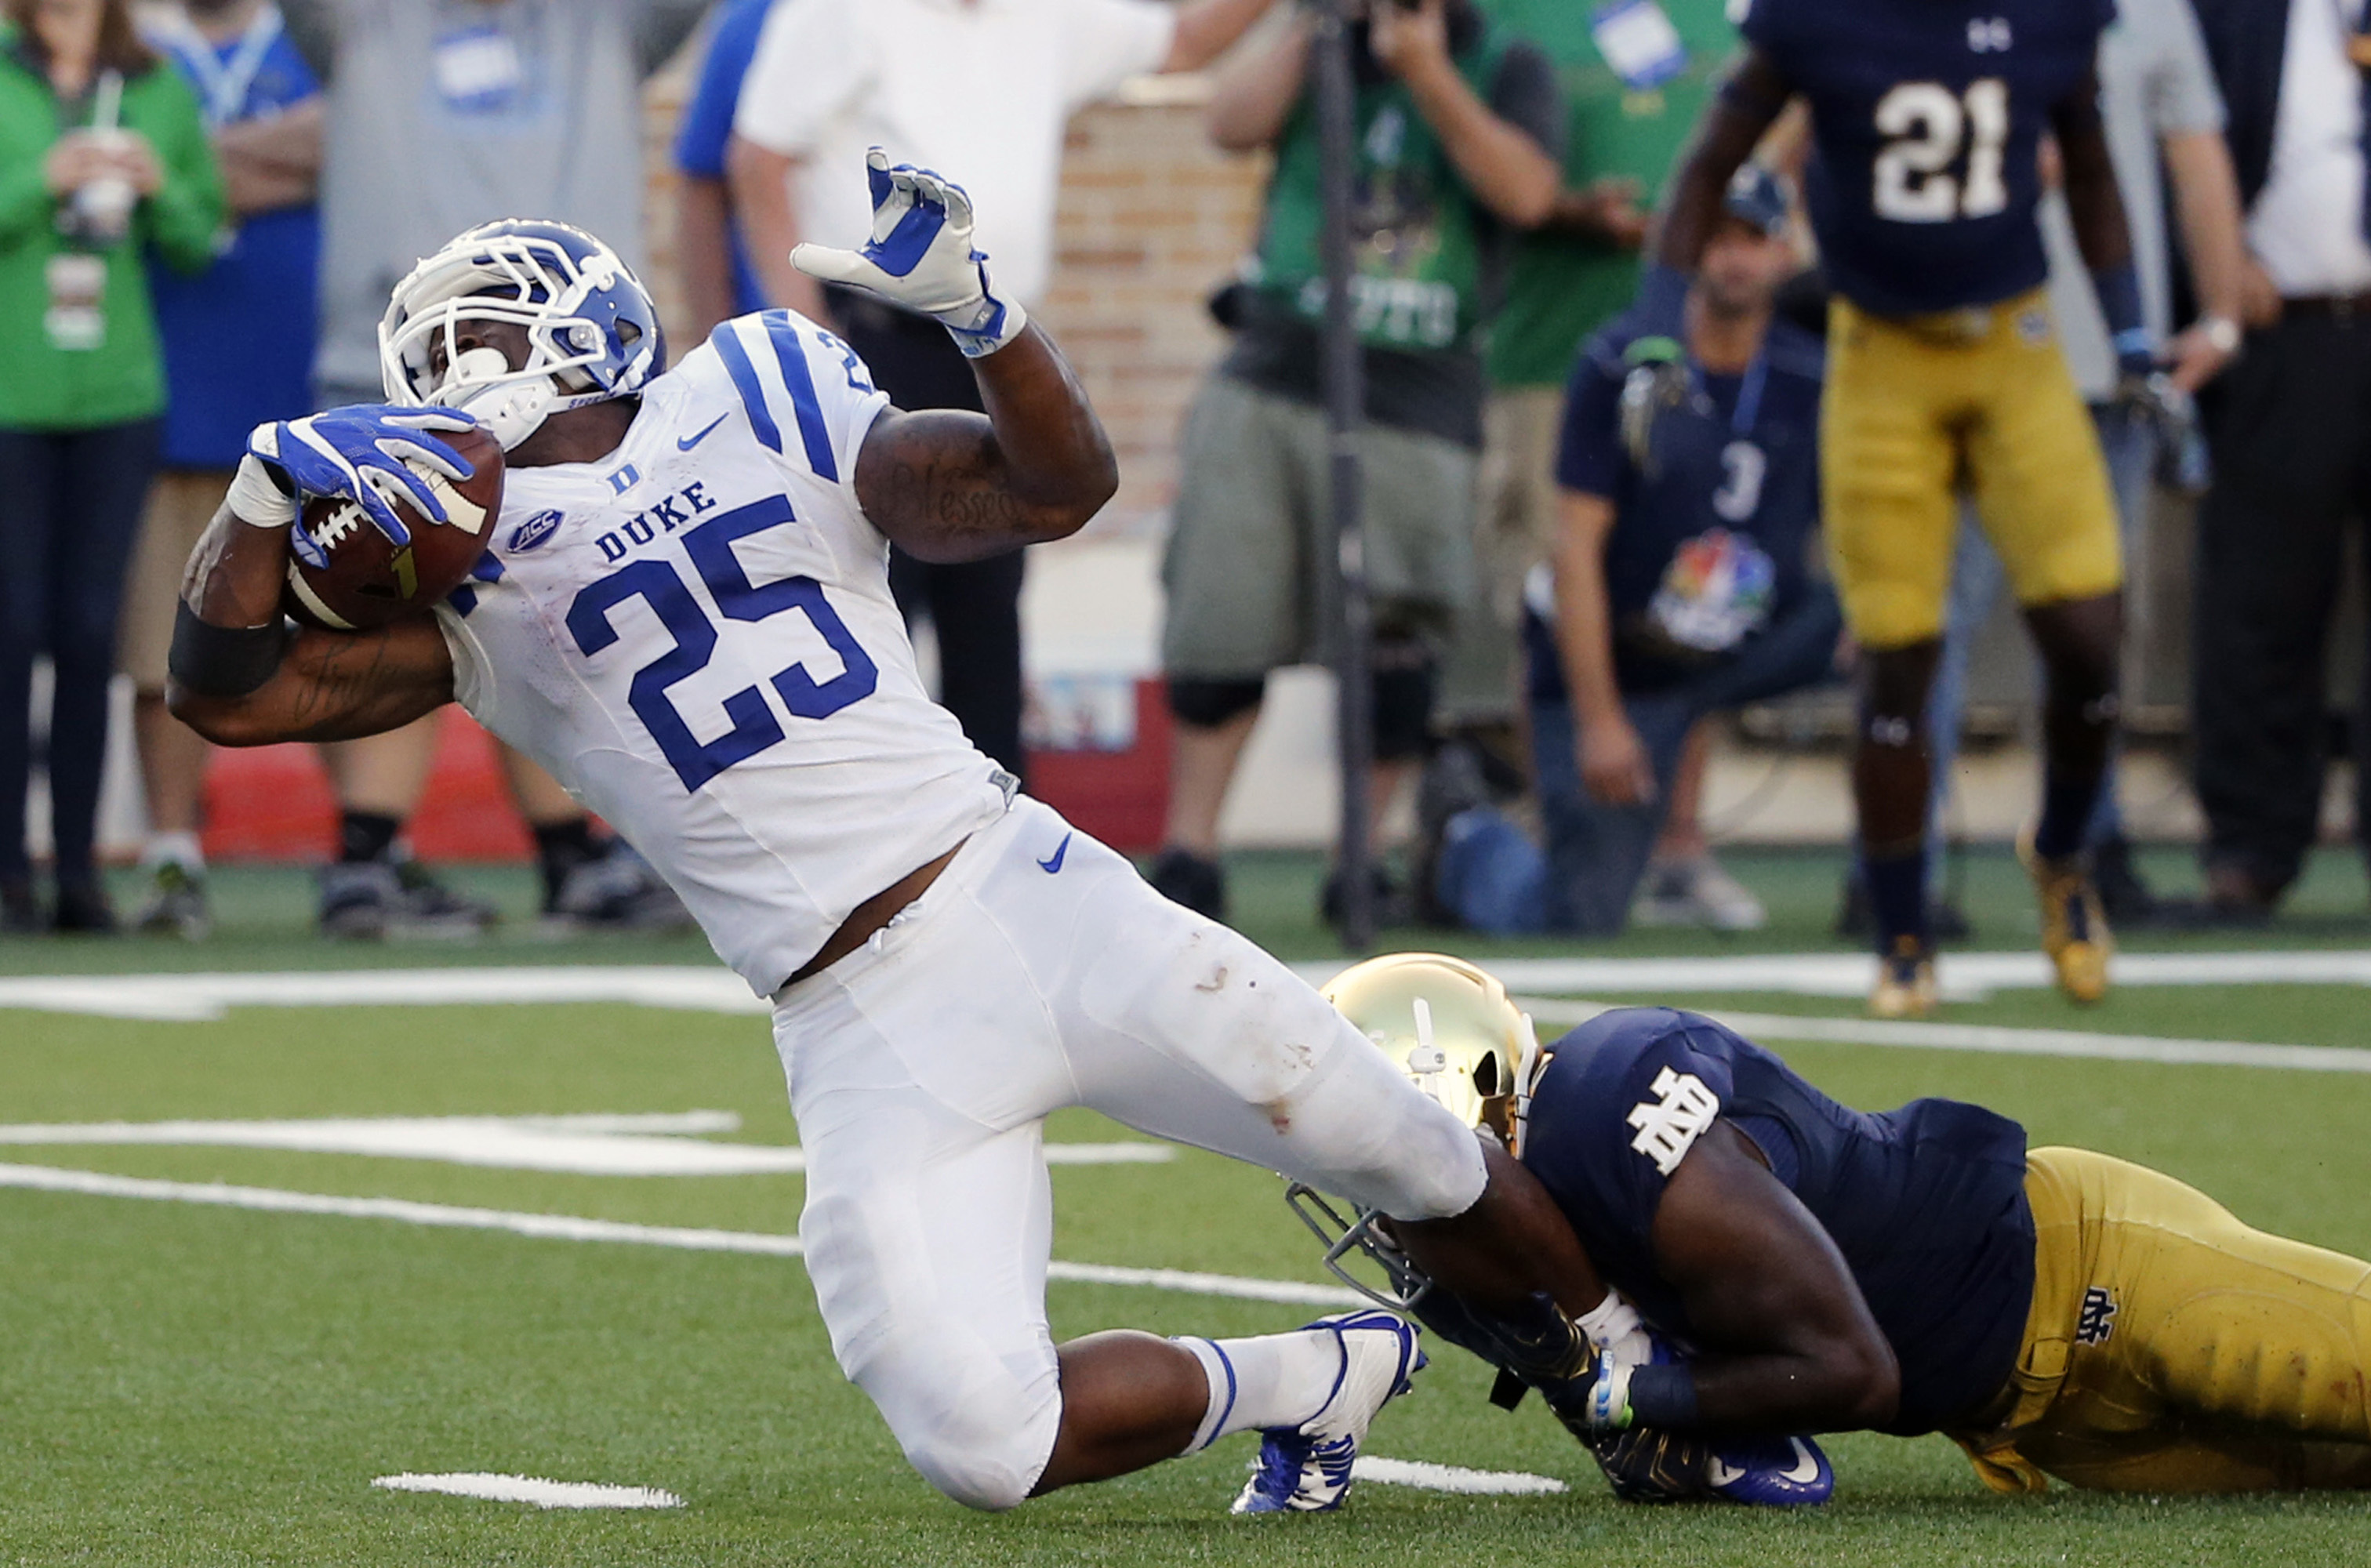 Duke running back Jela Duncan (25) is tackled by Notre Dame safety Avery Sebastian during the second half of an NCAA college football game Saturday, Sept. 24, 2016, in South Bend, Ind. (AP Photo/Charles Rex Arbogast)